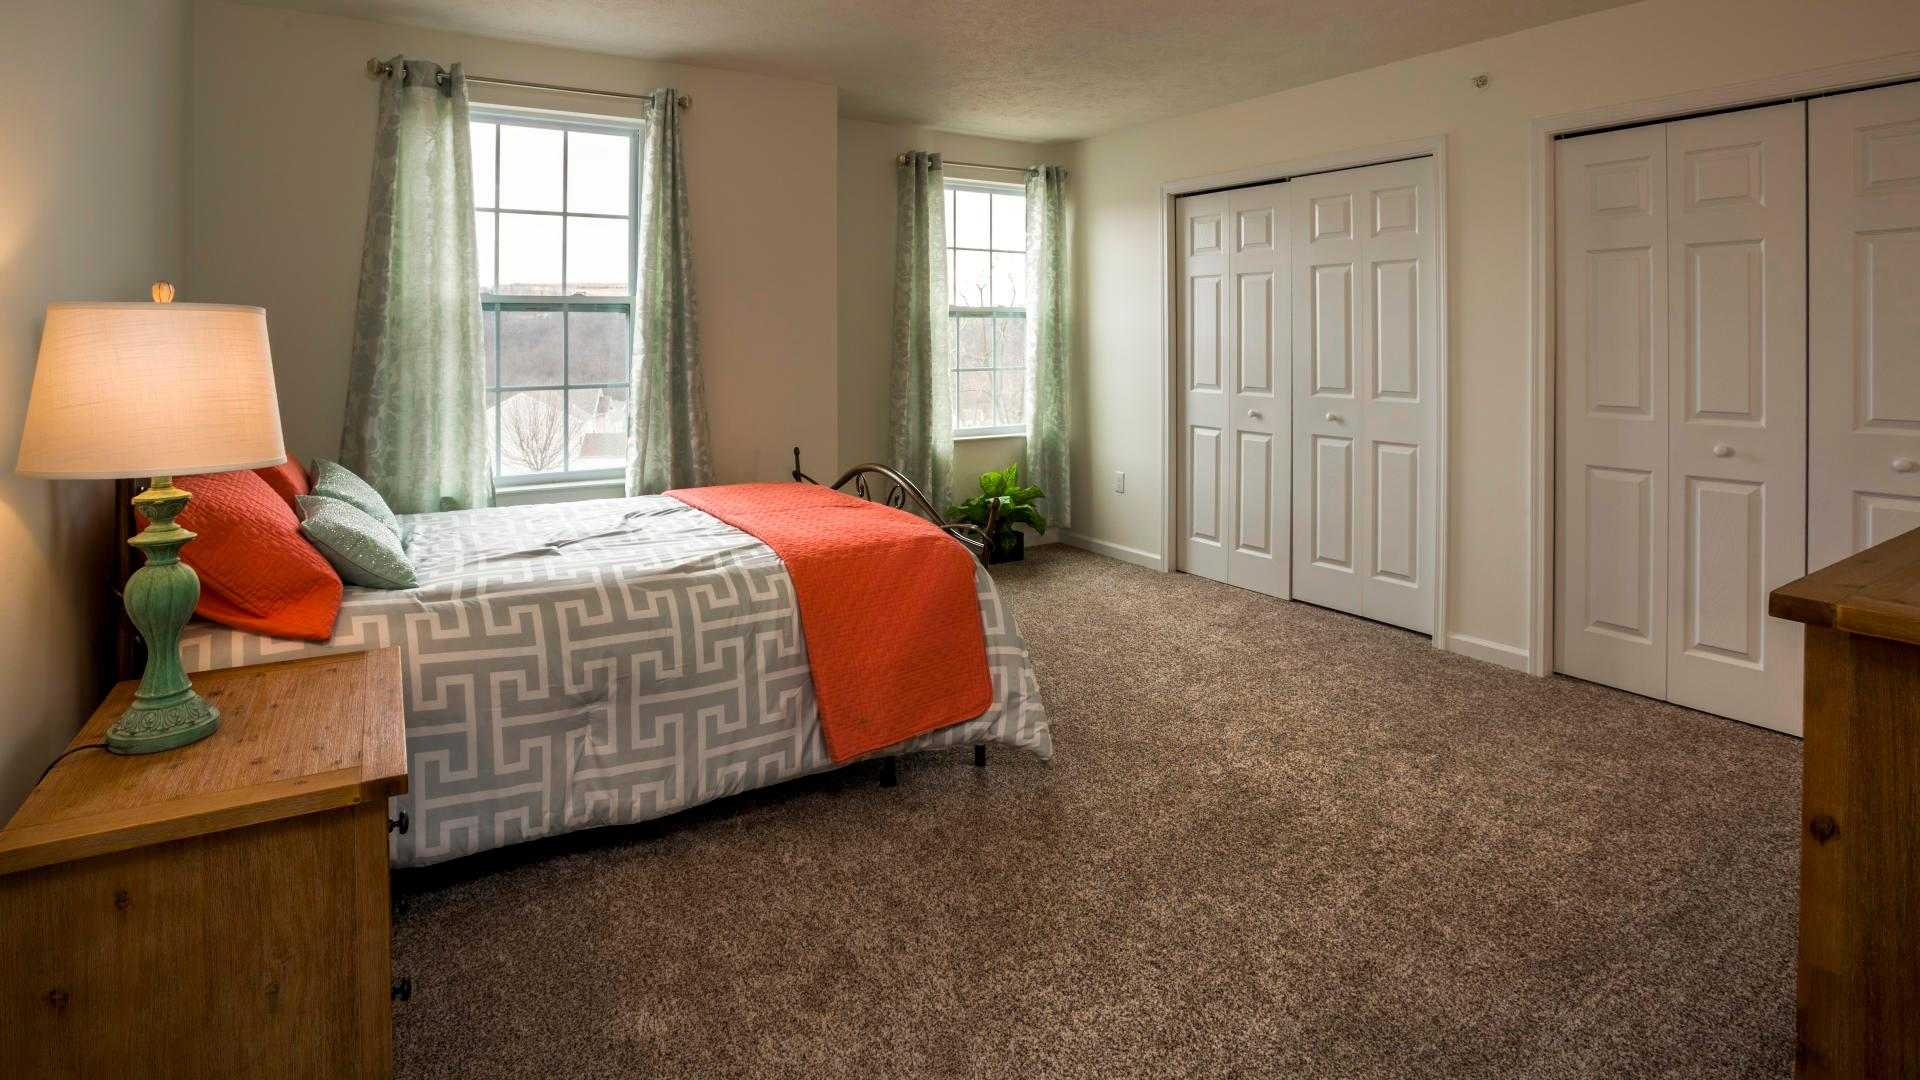 Bedroom featured in the St. Albert By Maronda Homes in Pittsburgh, PA